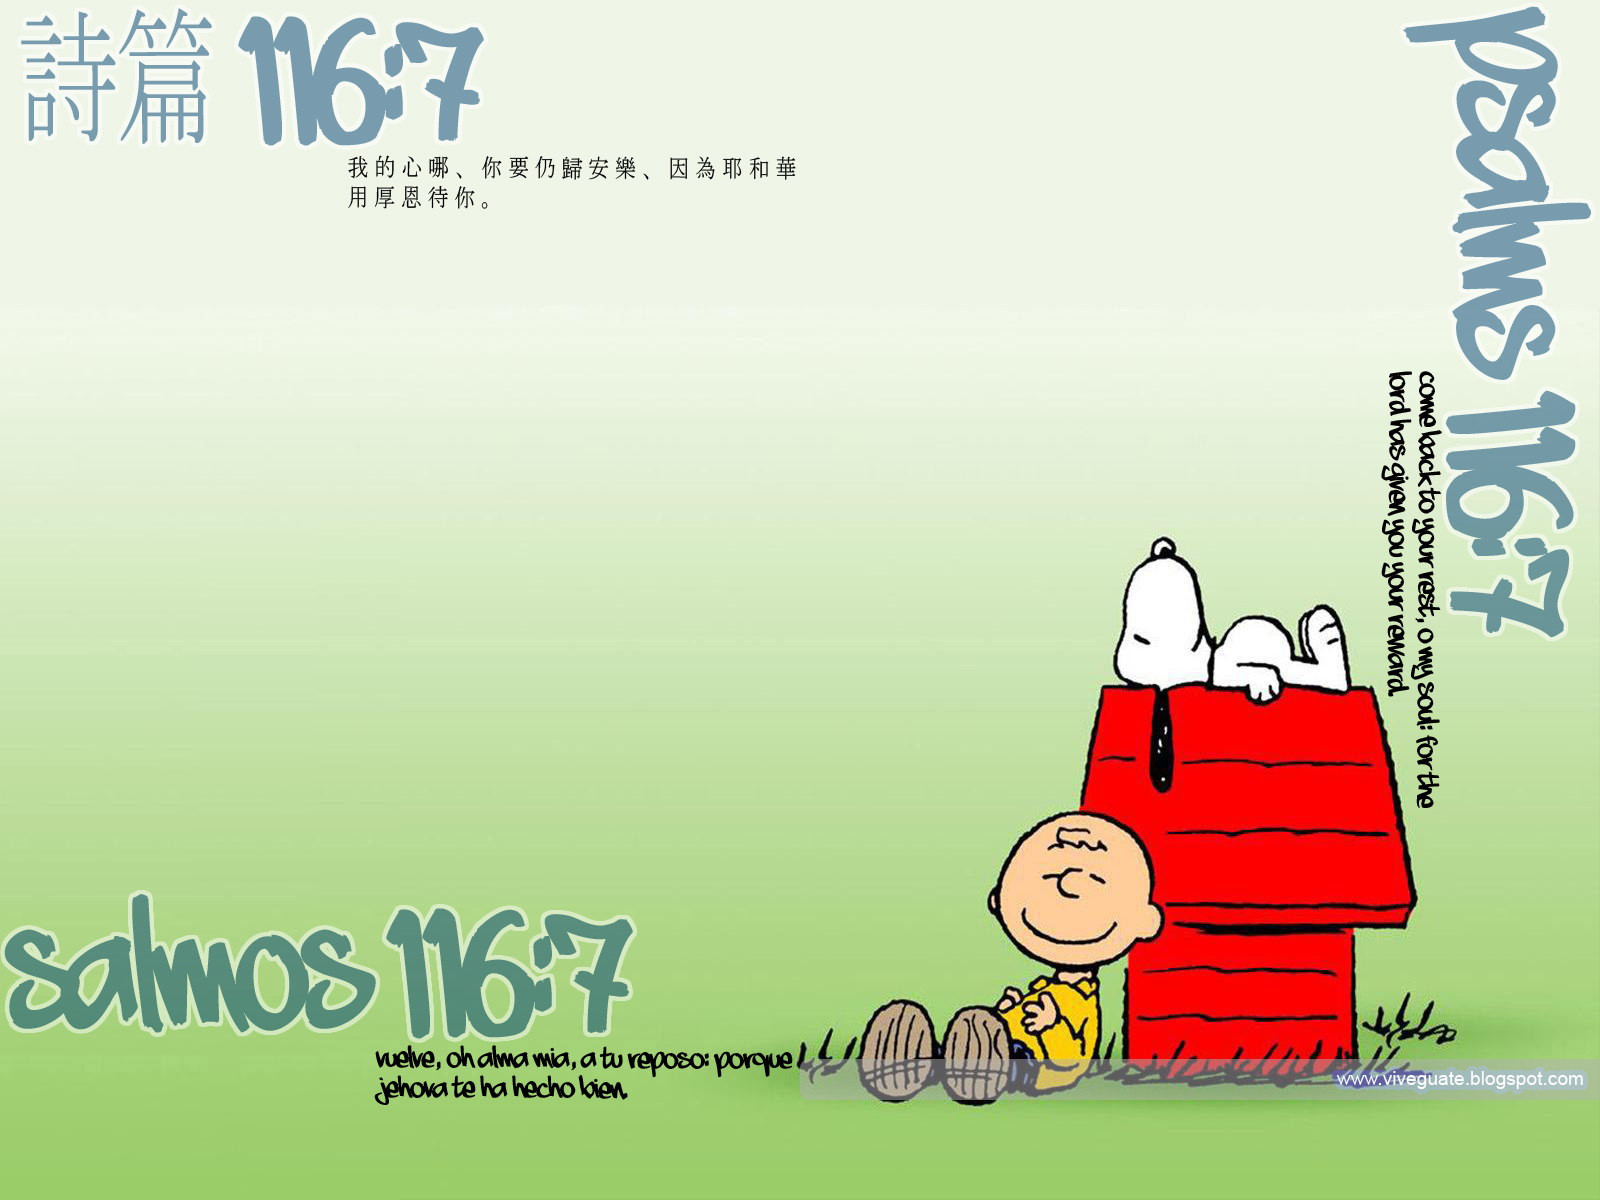 Hd Wallpapers Snoopy New Year 1024 X 768 68 Kb Jpeg HD Wallpapers 1600x1200